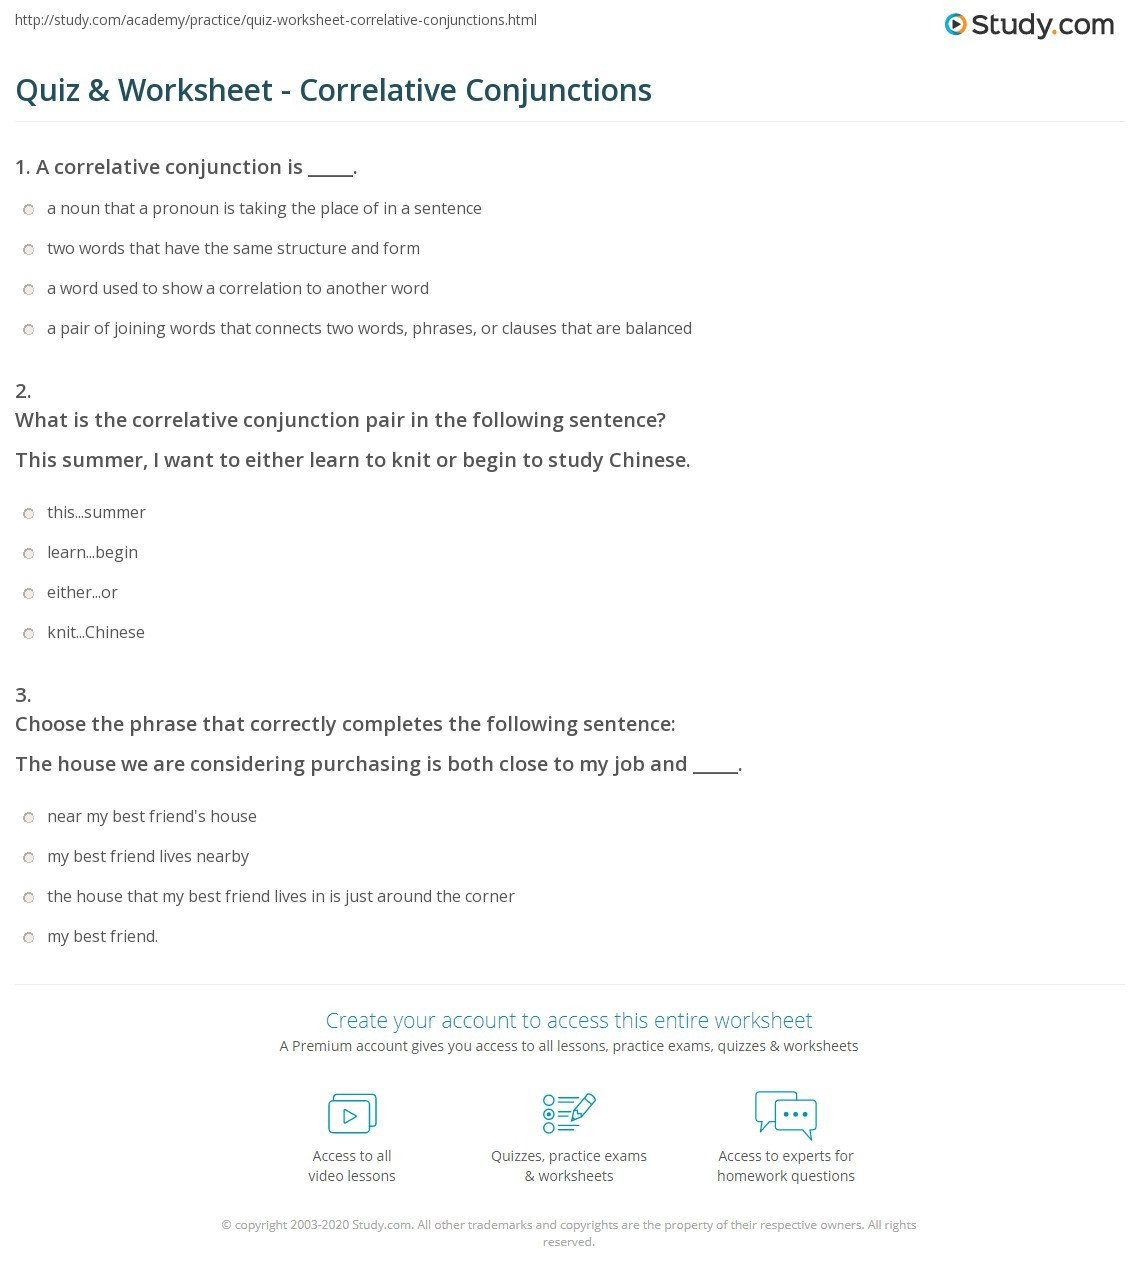 Correlative Conjunctions Worksheets with Answers Quiz & Worksheet Correlative Conjunctions